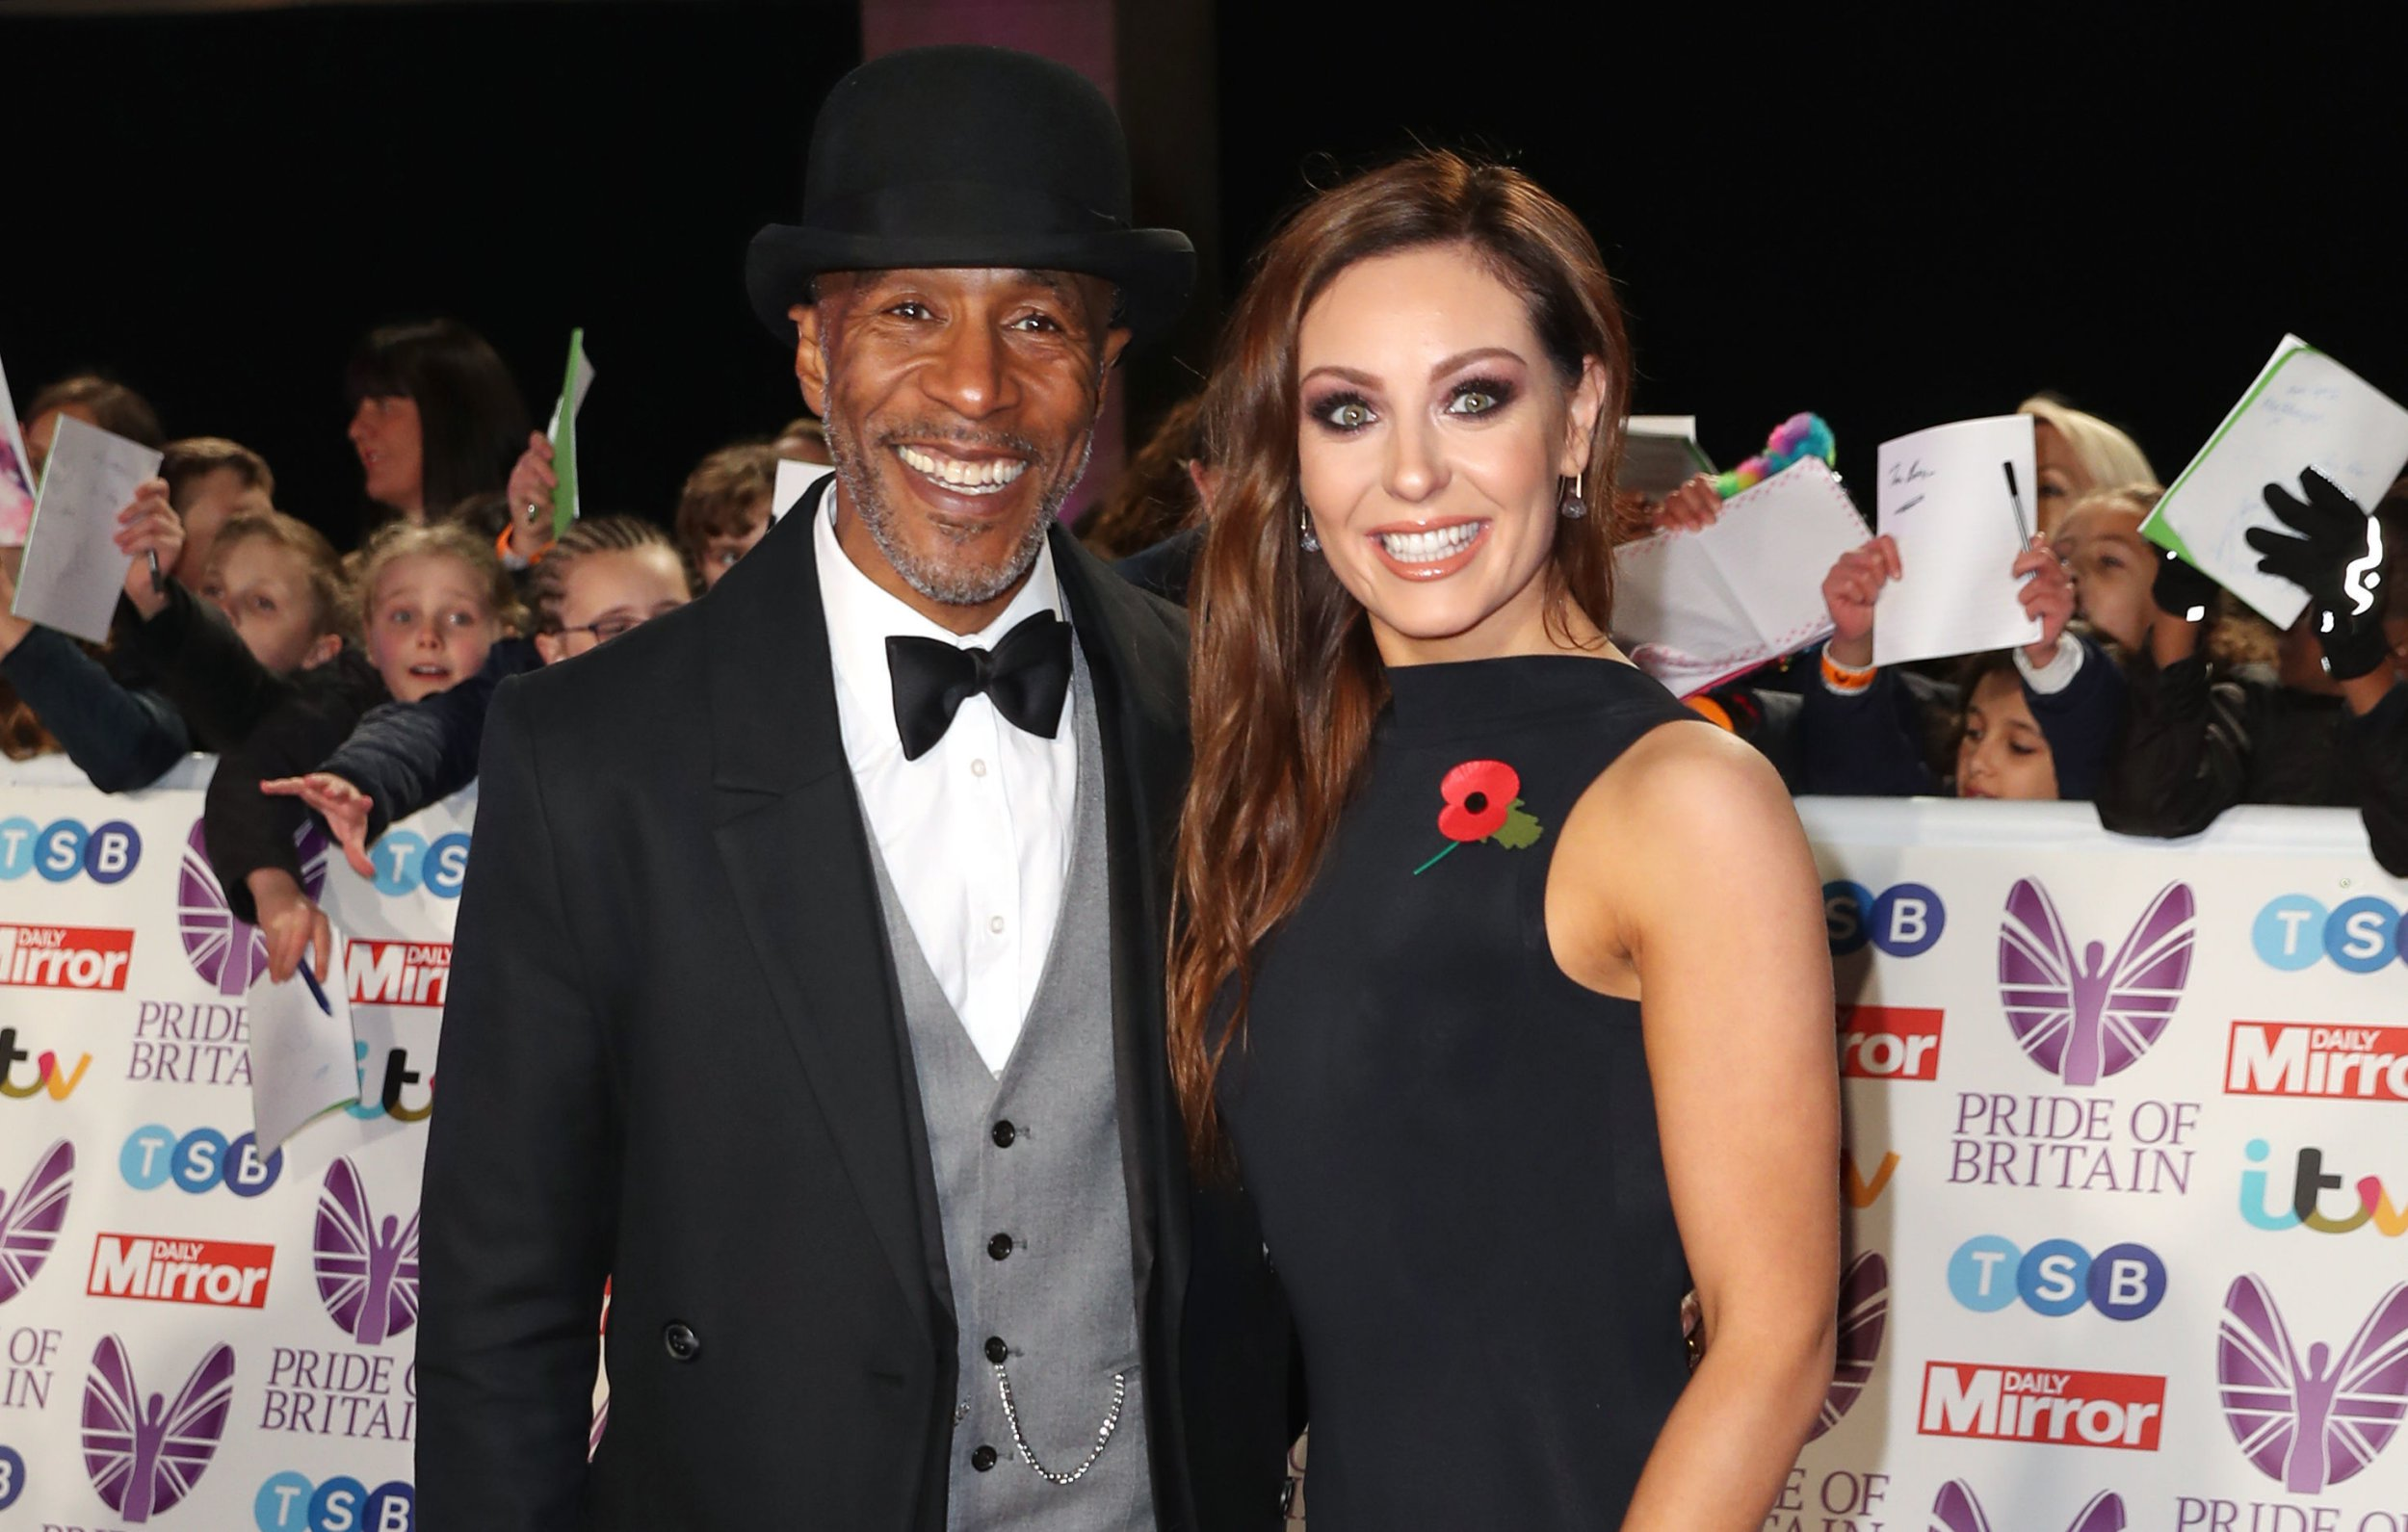 Strictly's Danny John-Jules and Amy Dowden slam bullying claims on It Takes Two